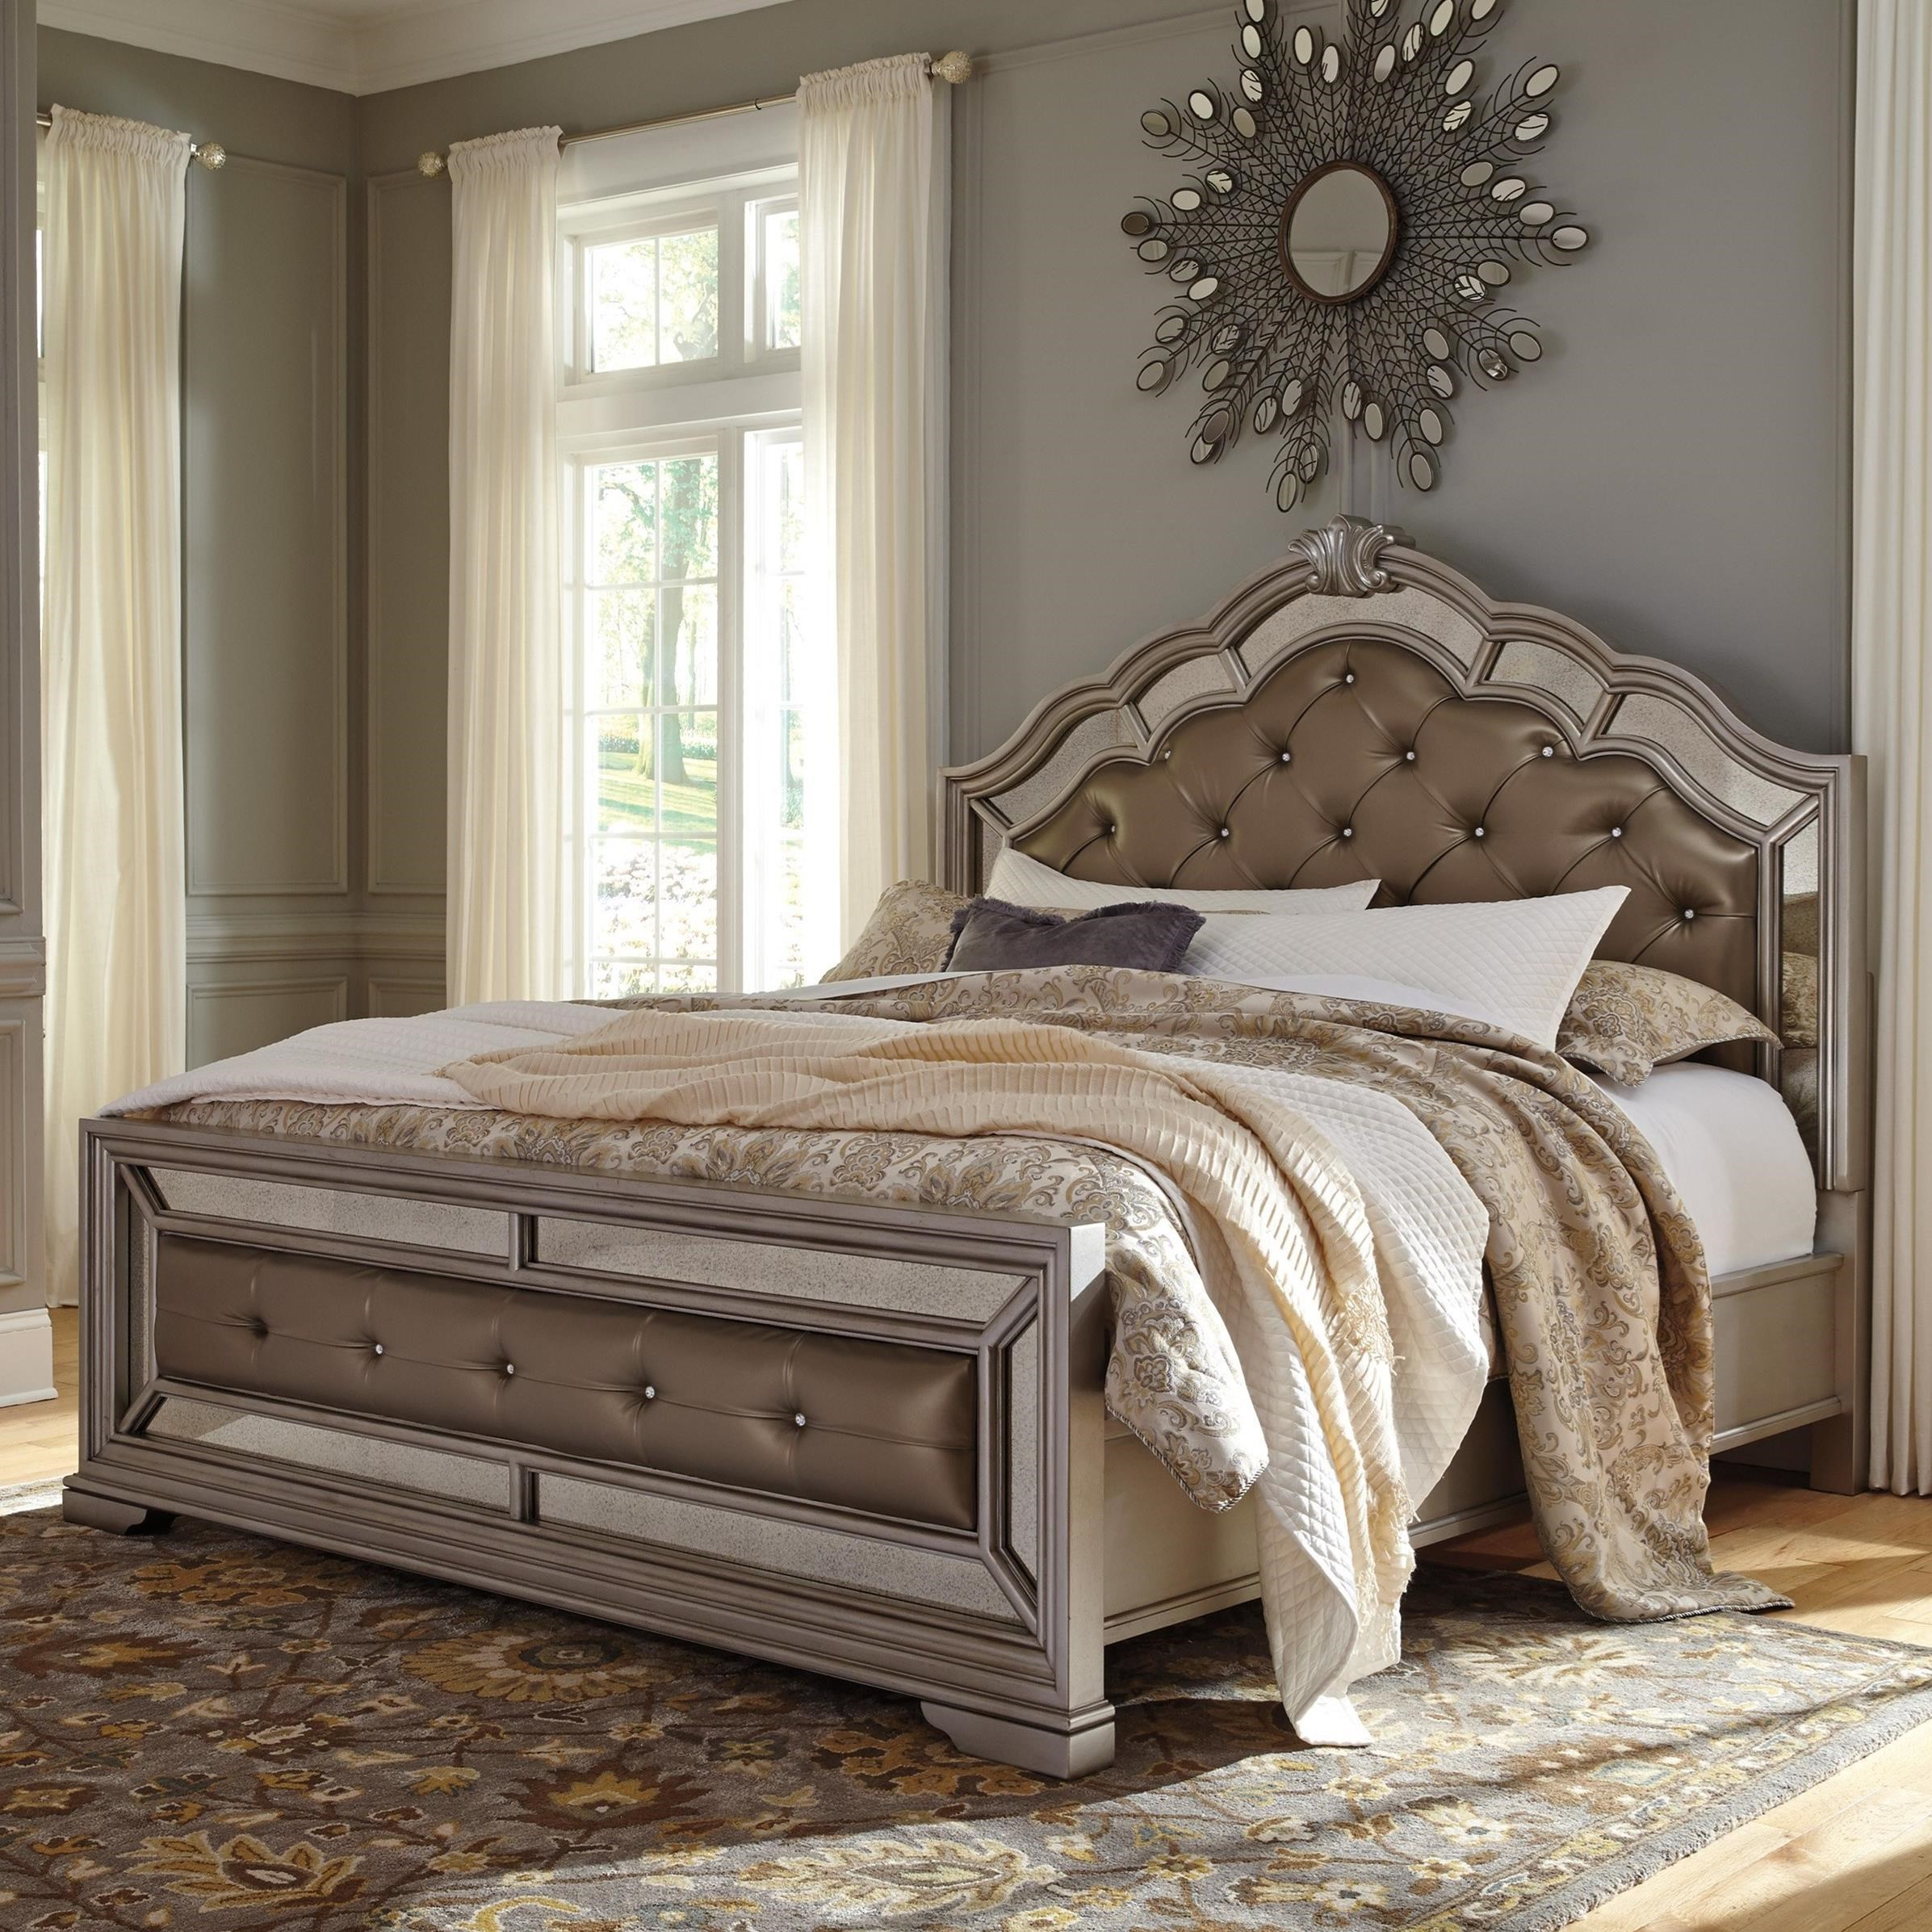 signature design by ashley birlanny queen upholstered bed in silver finish - Ashley Furniture Beds